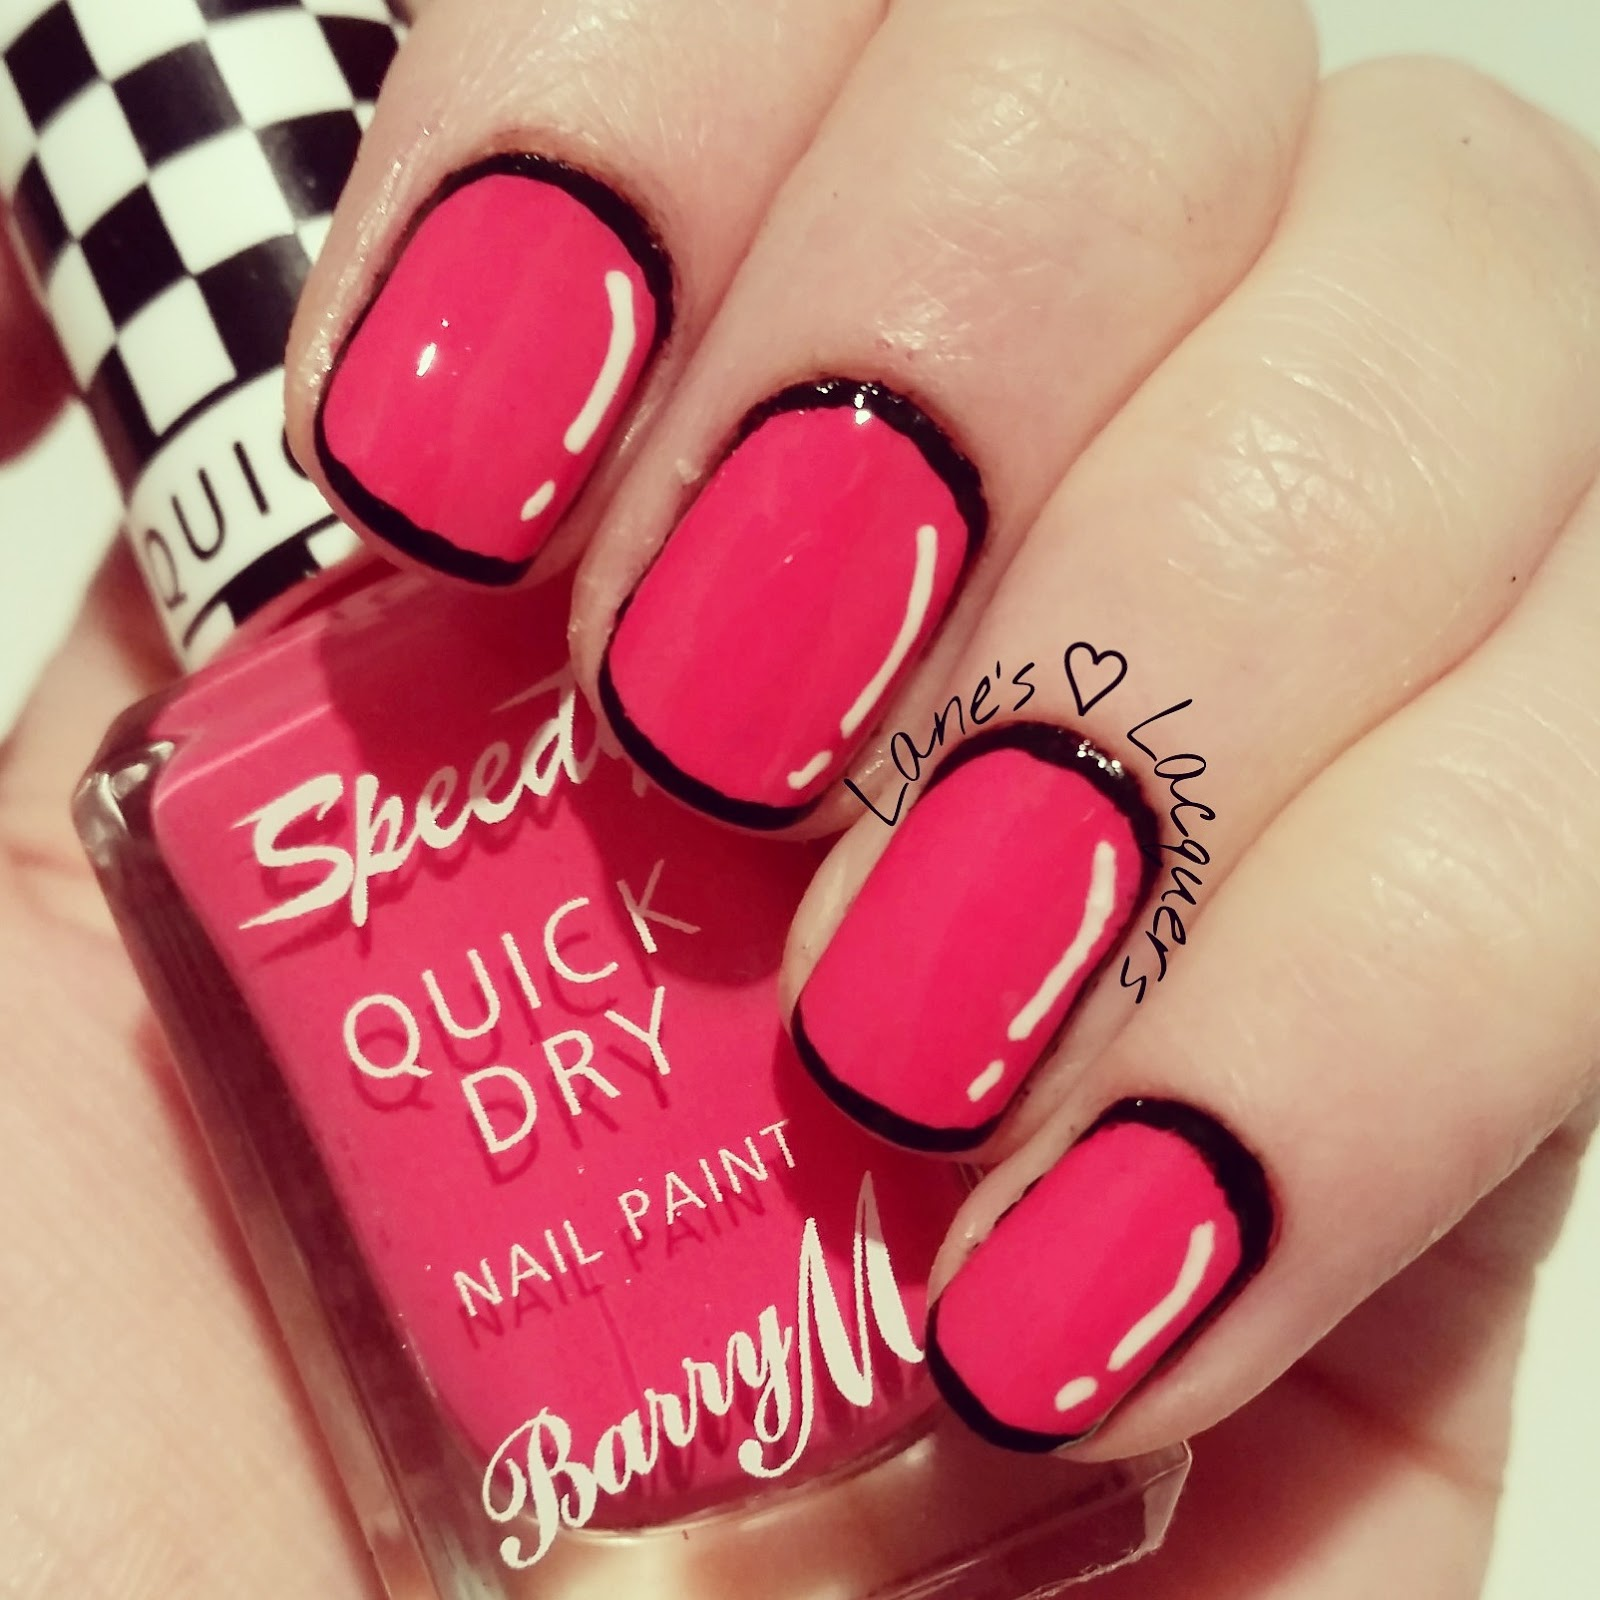 Lanes lacquers 40 great nail art ideas cartoons comics 40 great nail art ideas barry m cartoon prinsesfo Images